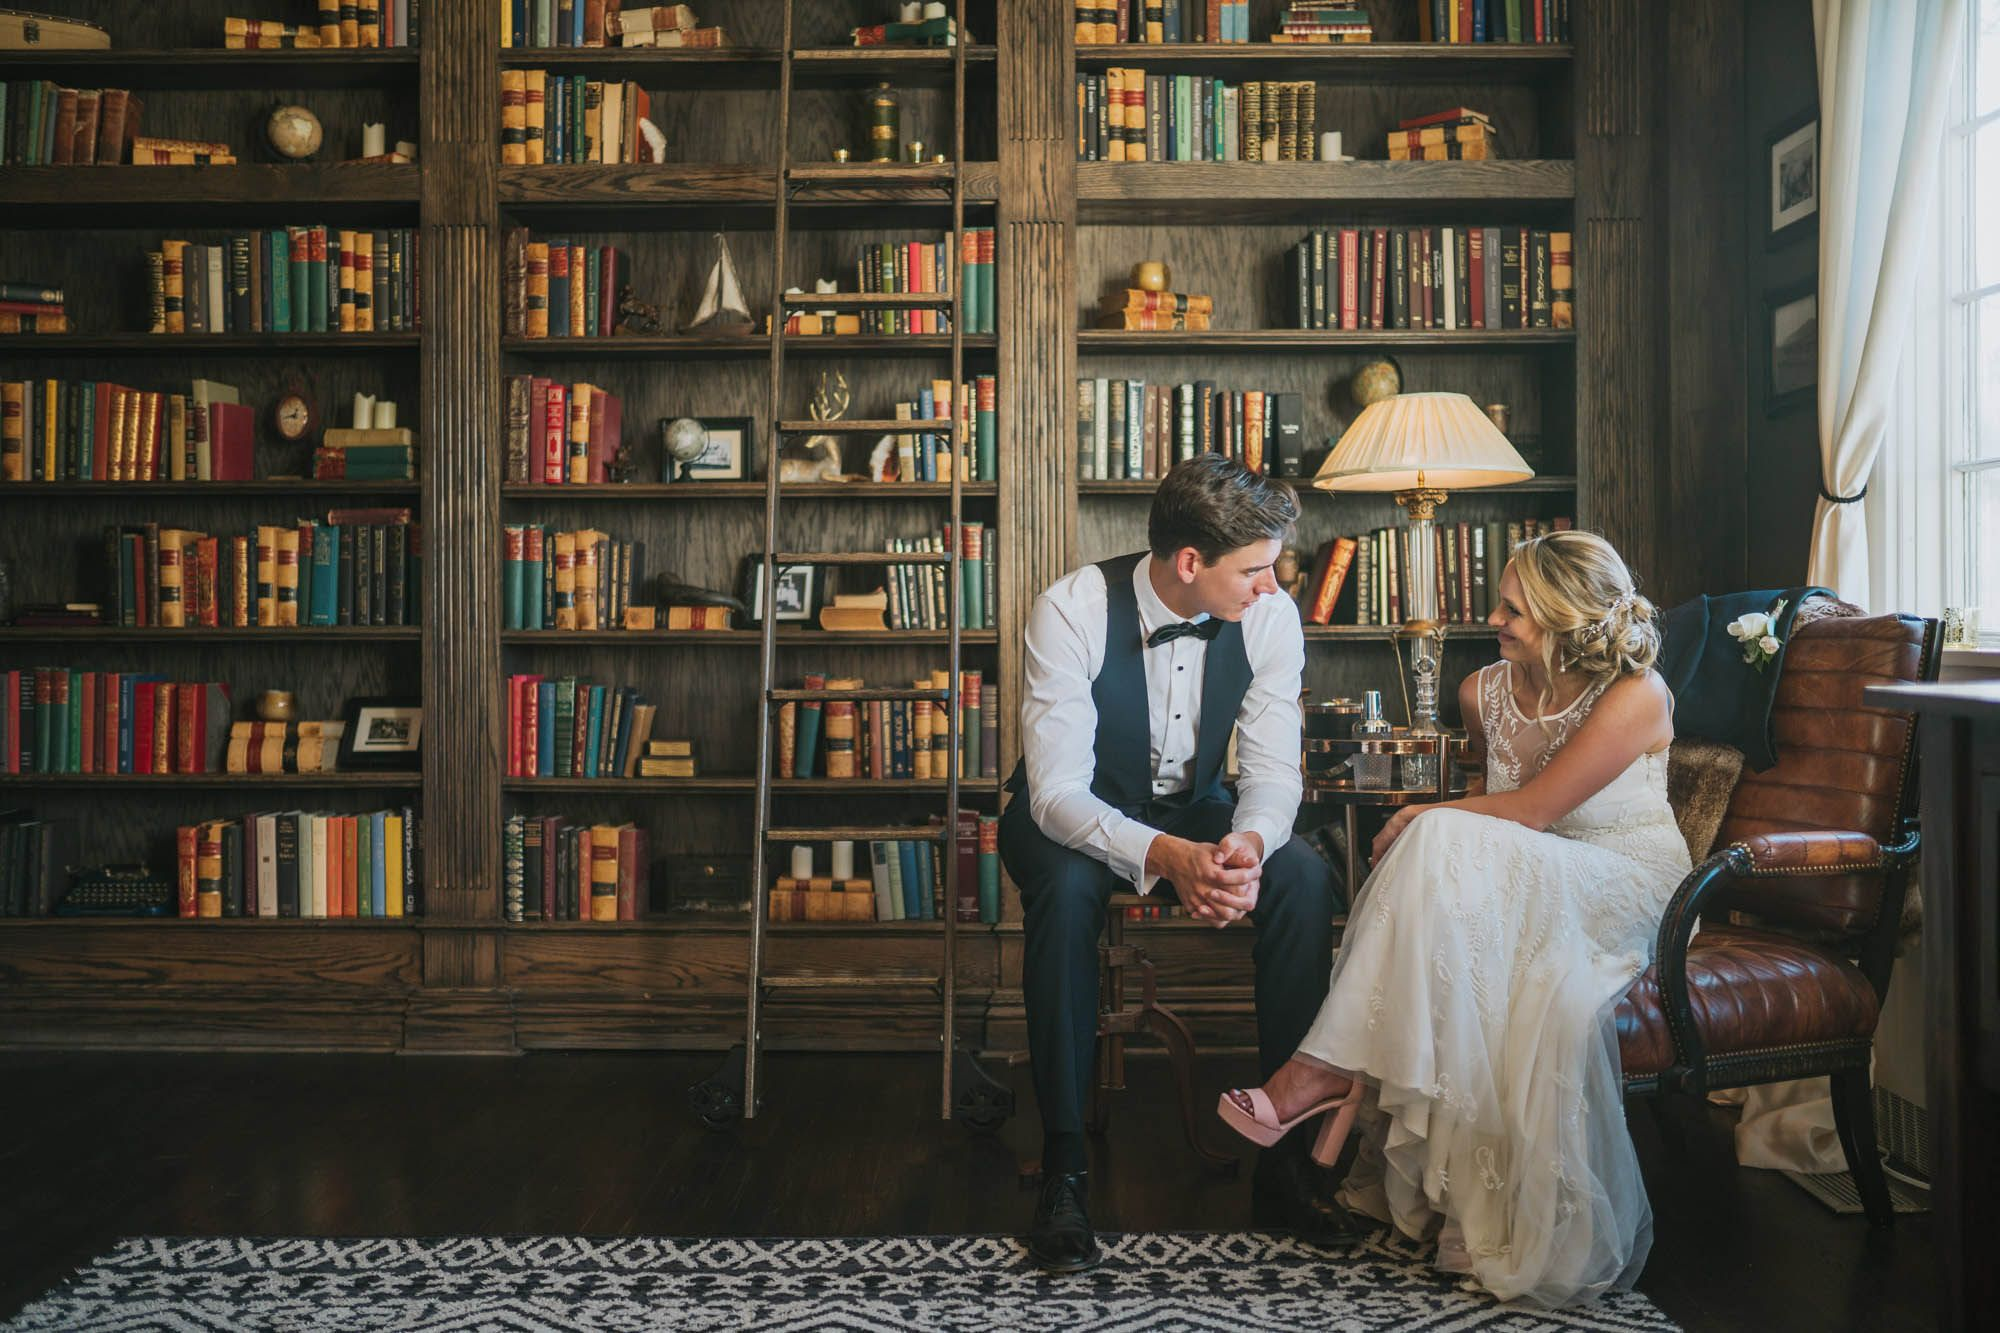 Library Wedding Manor House Library Wedding Couple By Elevate Photography Library Wedding Library Photo Shoot Wedding Photos